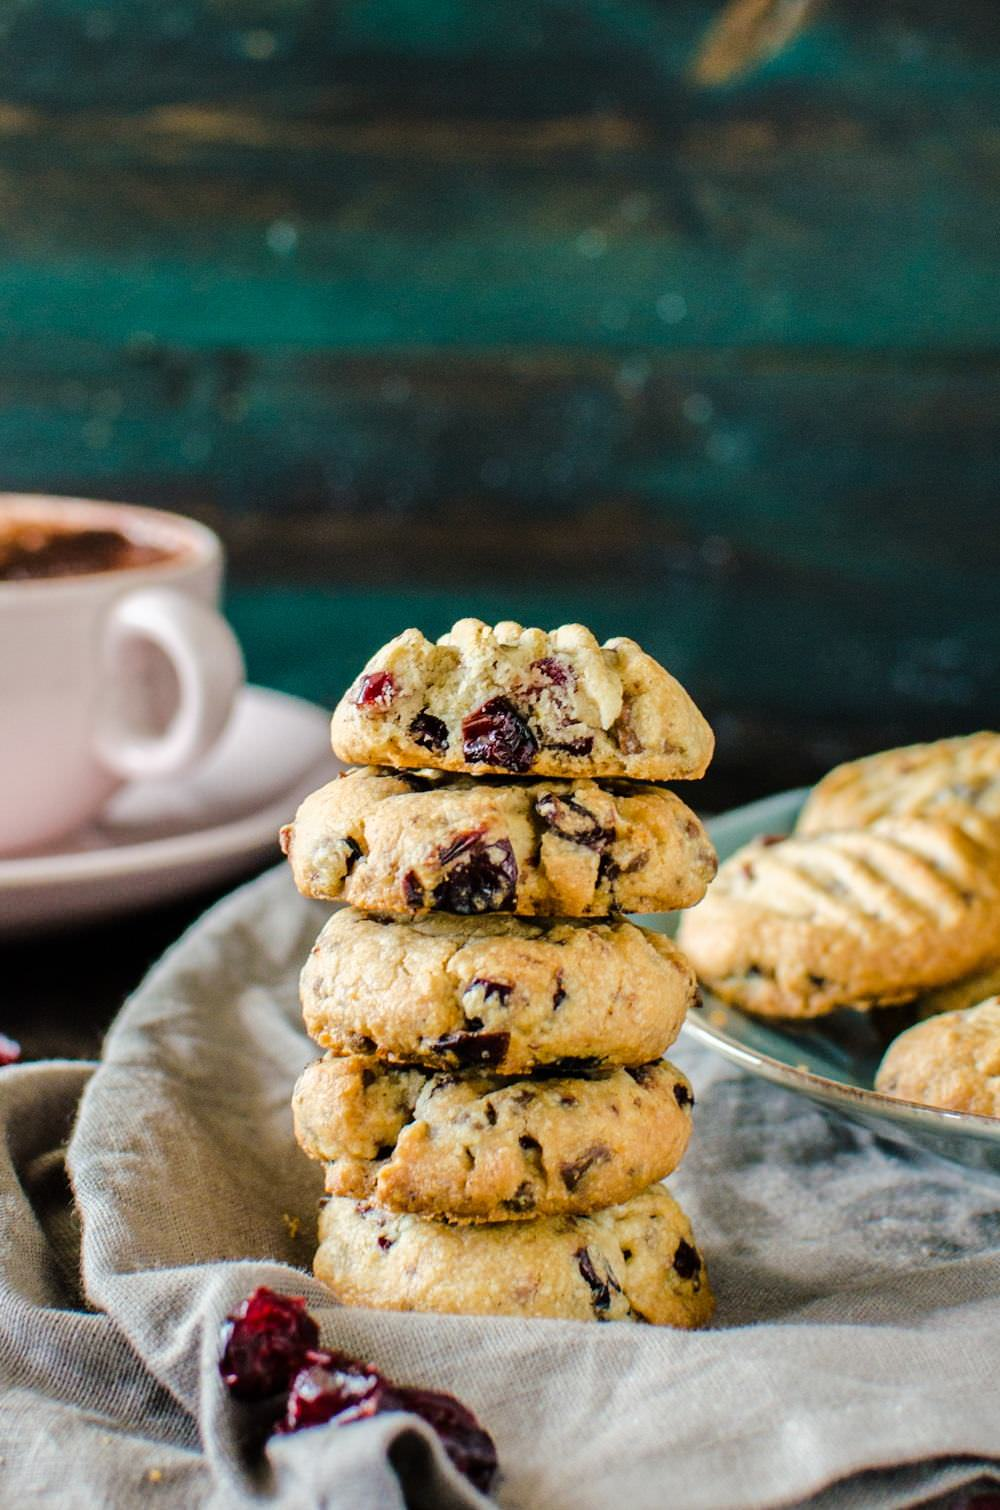 Chocolate Chip and Cranberry Shortbread Cookies | glitterinc.com | @glitterinc